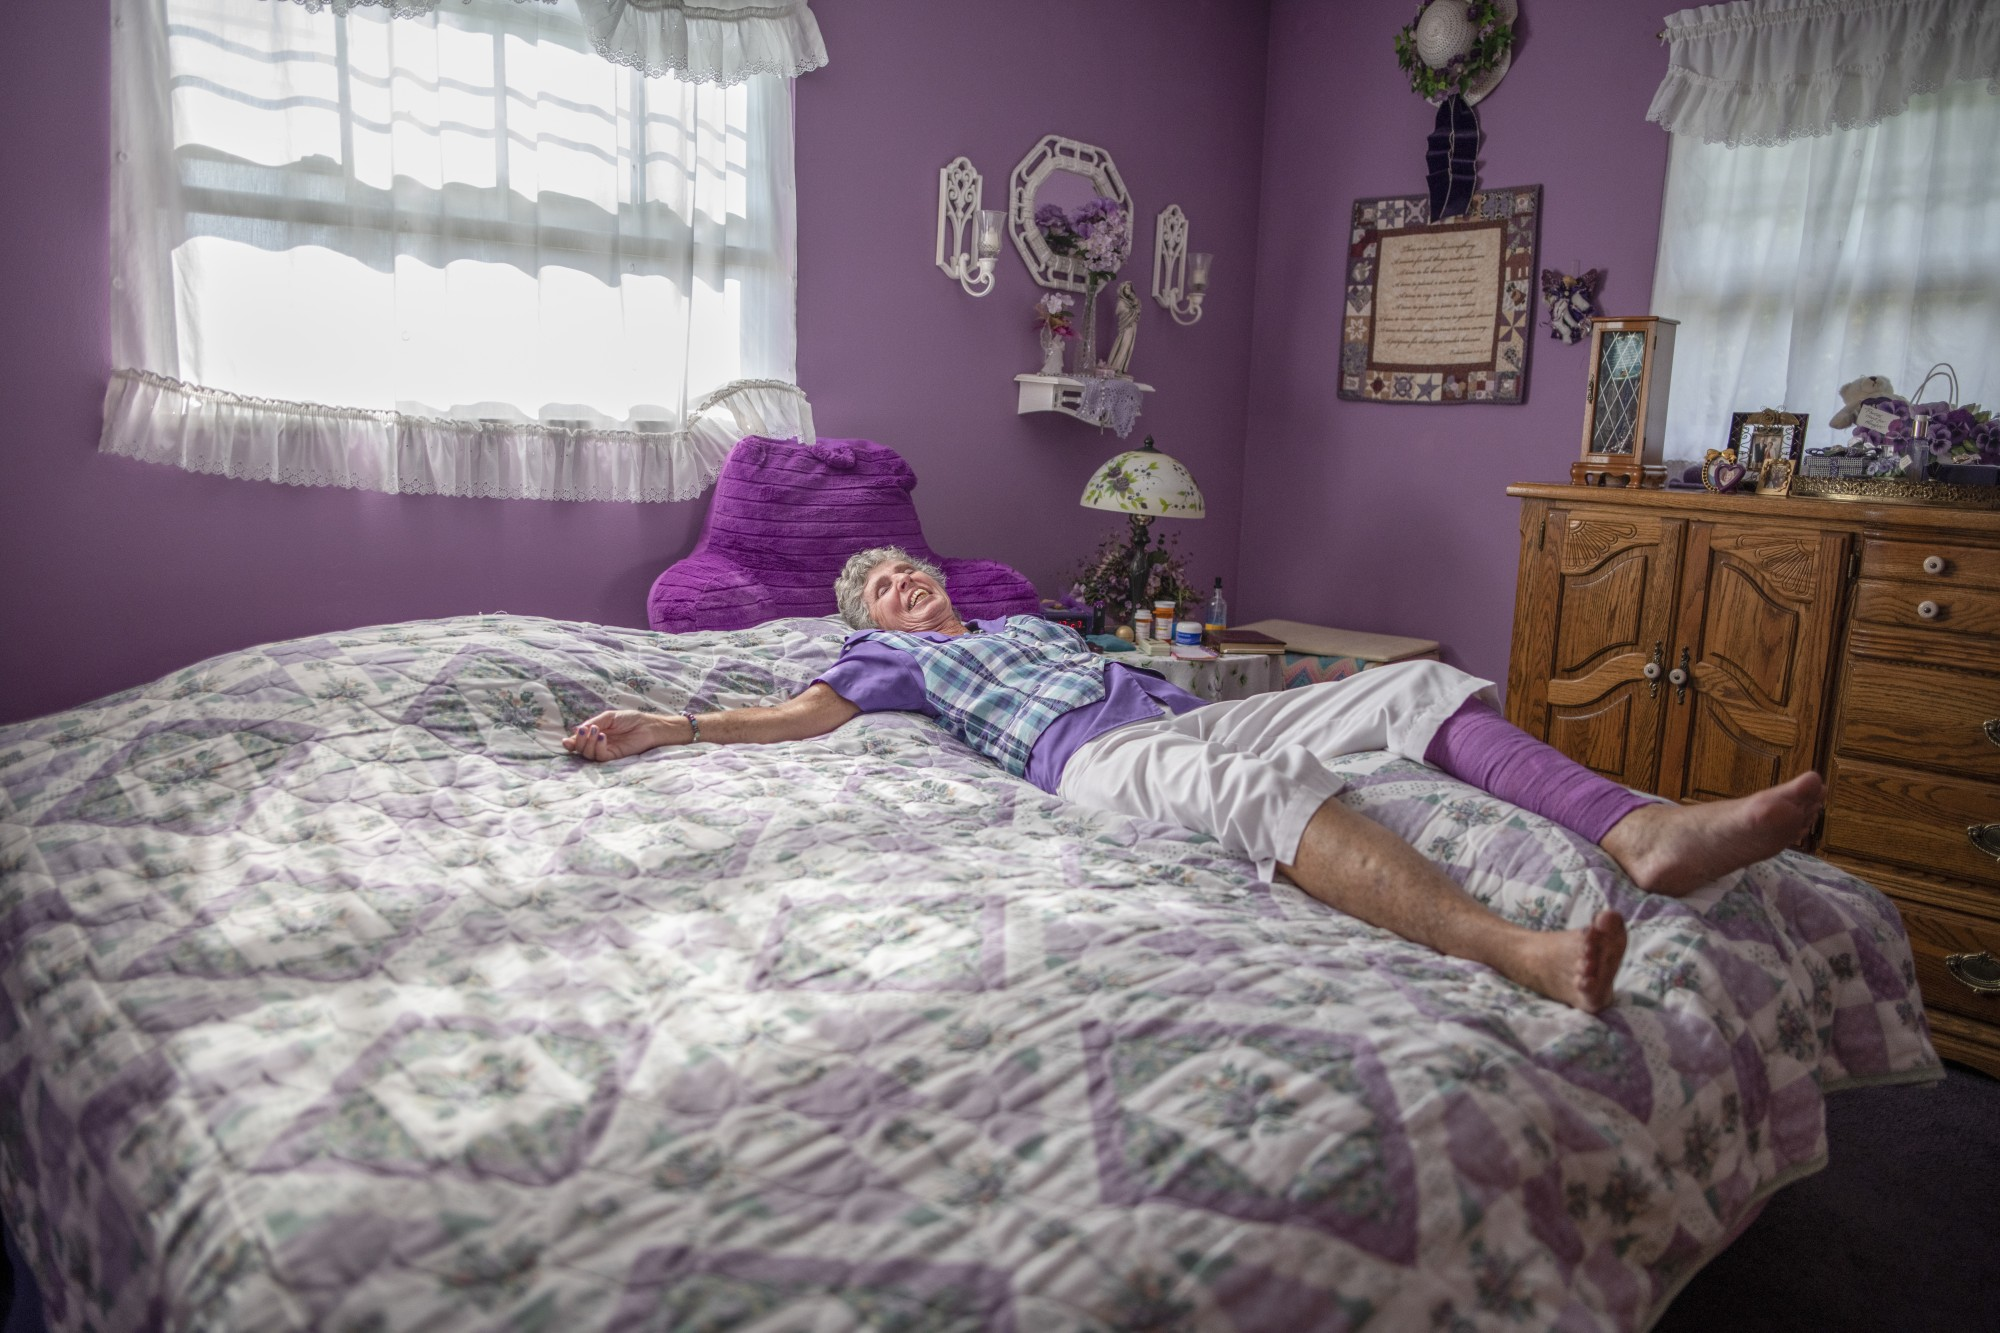 Cheryl Brockman, 71, of Bellbrook, Ohio, lays in her 'purple bedroom,' on the morning of Sept. 8, 2020.  Cheryl loves the color purple and collects all things purple. 'My husband tells me if I bring home one more thing that's purple, I'm going to have to take it right back.'